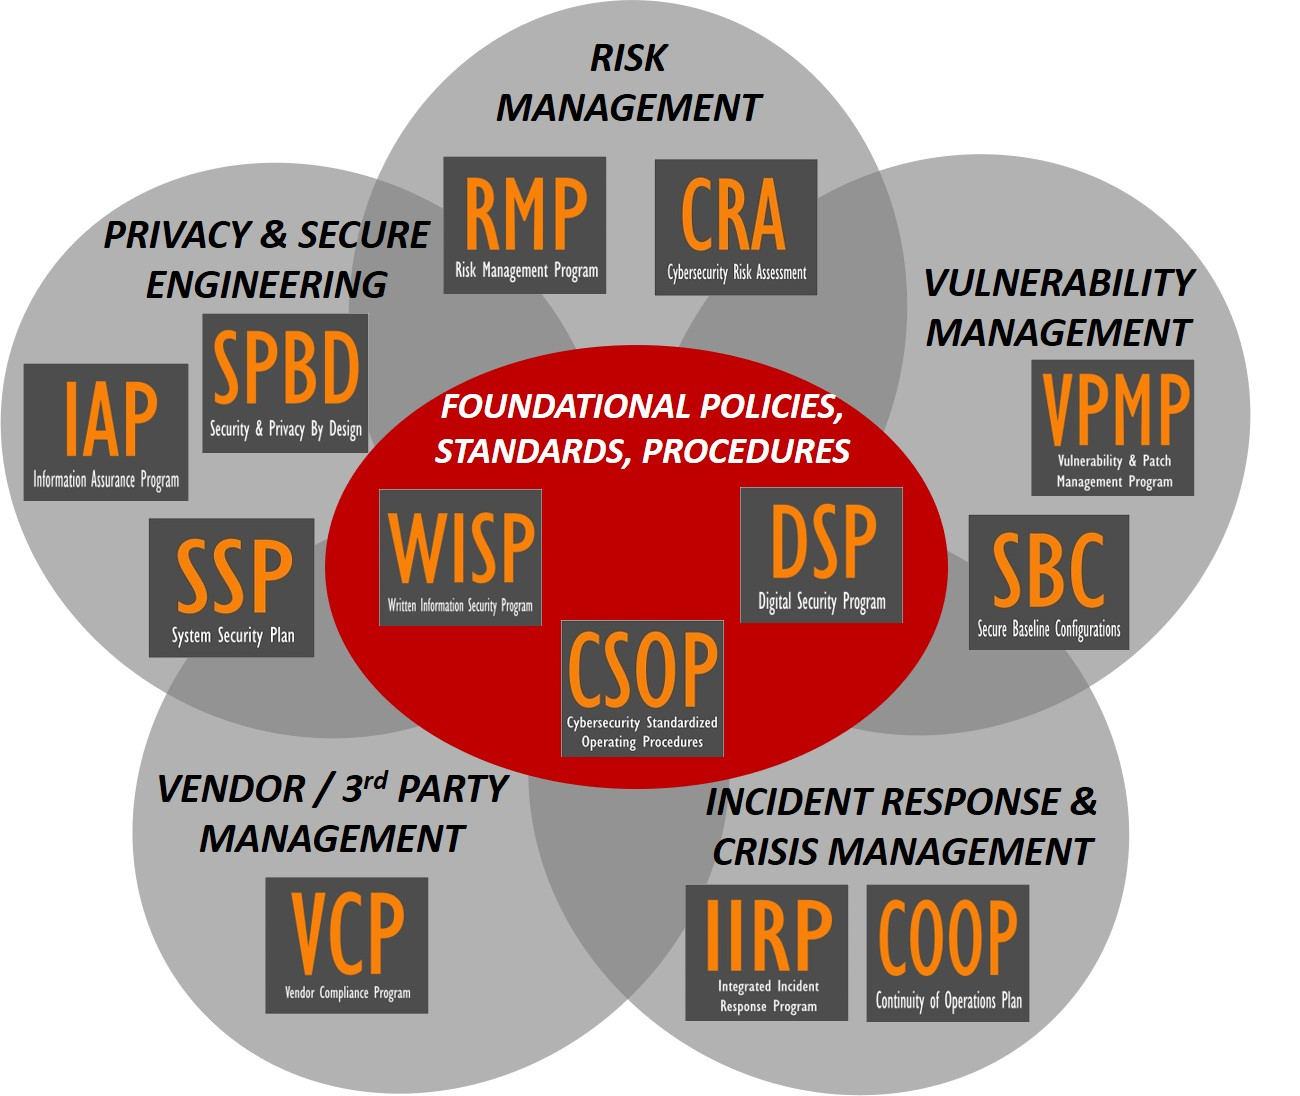 product-selection-2020.1-cybersecurity-policies-standards-procedures-controls.jpg